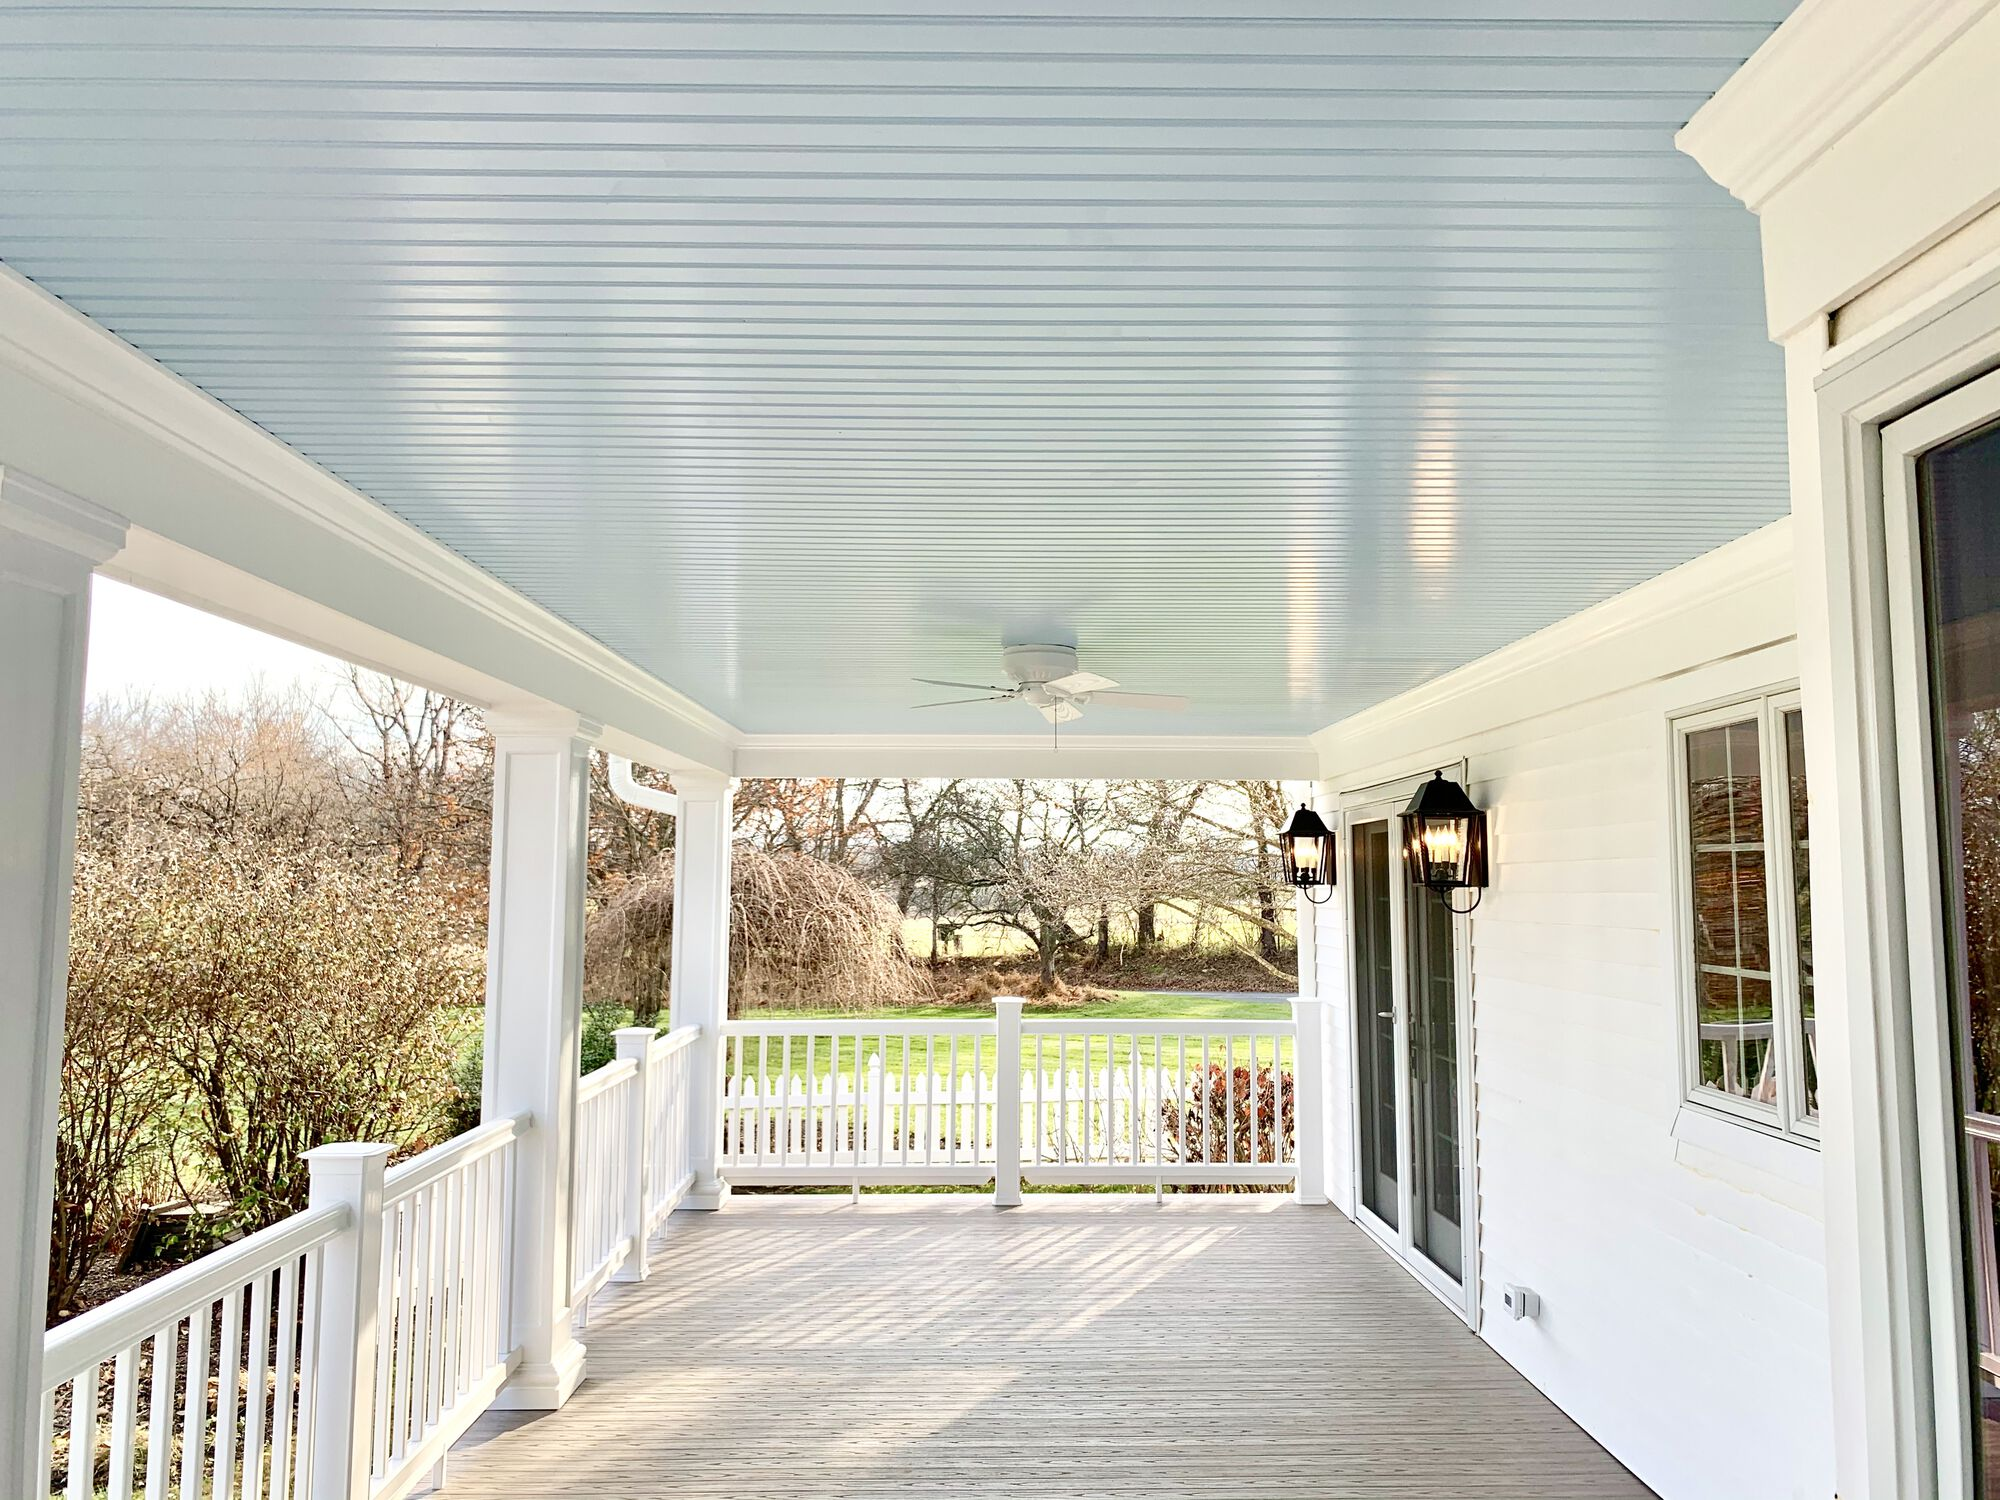 Covered Porch with Azek Composite Grooved Decking, Timbertech Radiance Rails, Grooved Ceiling in Washington, Warren County NJ